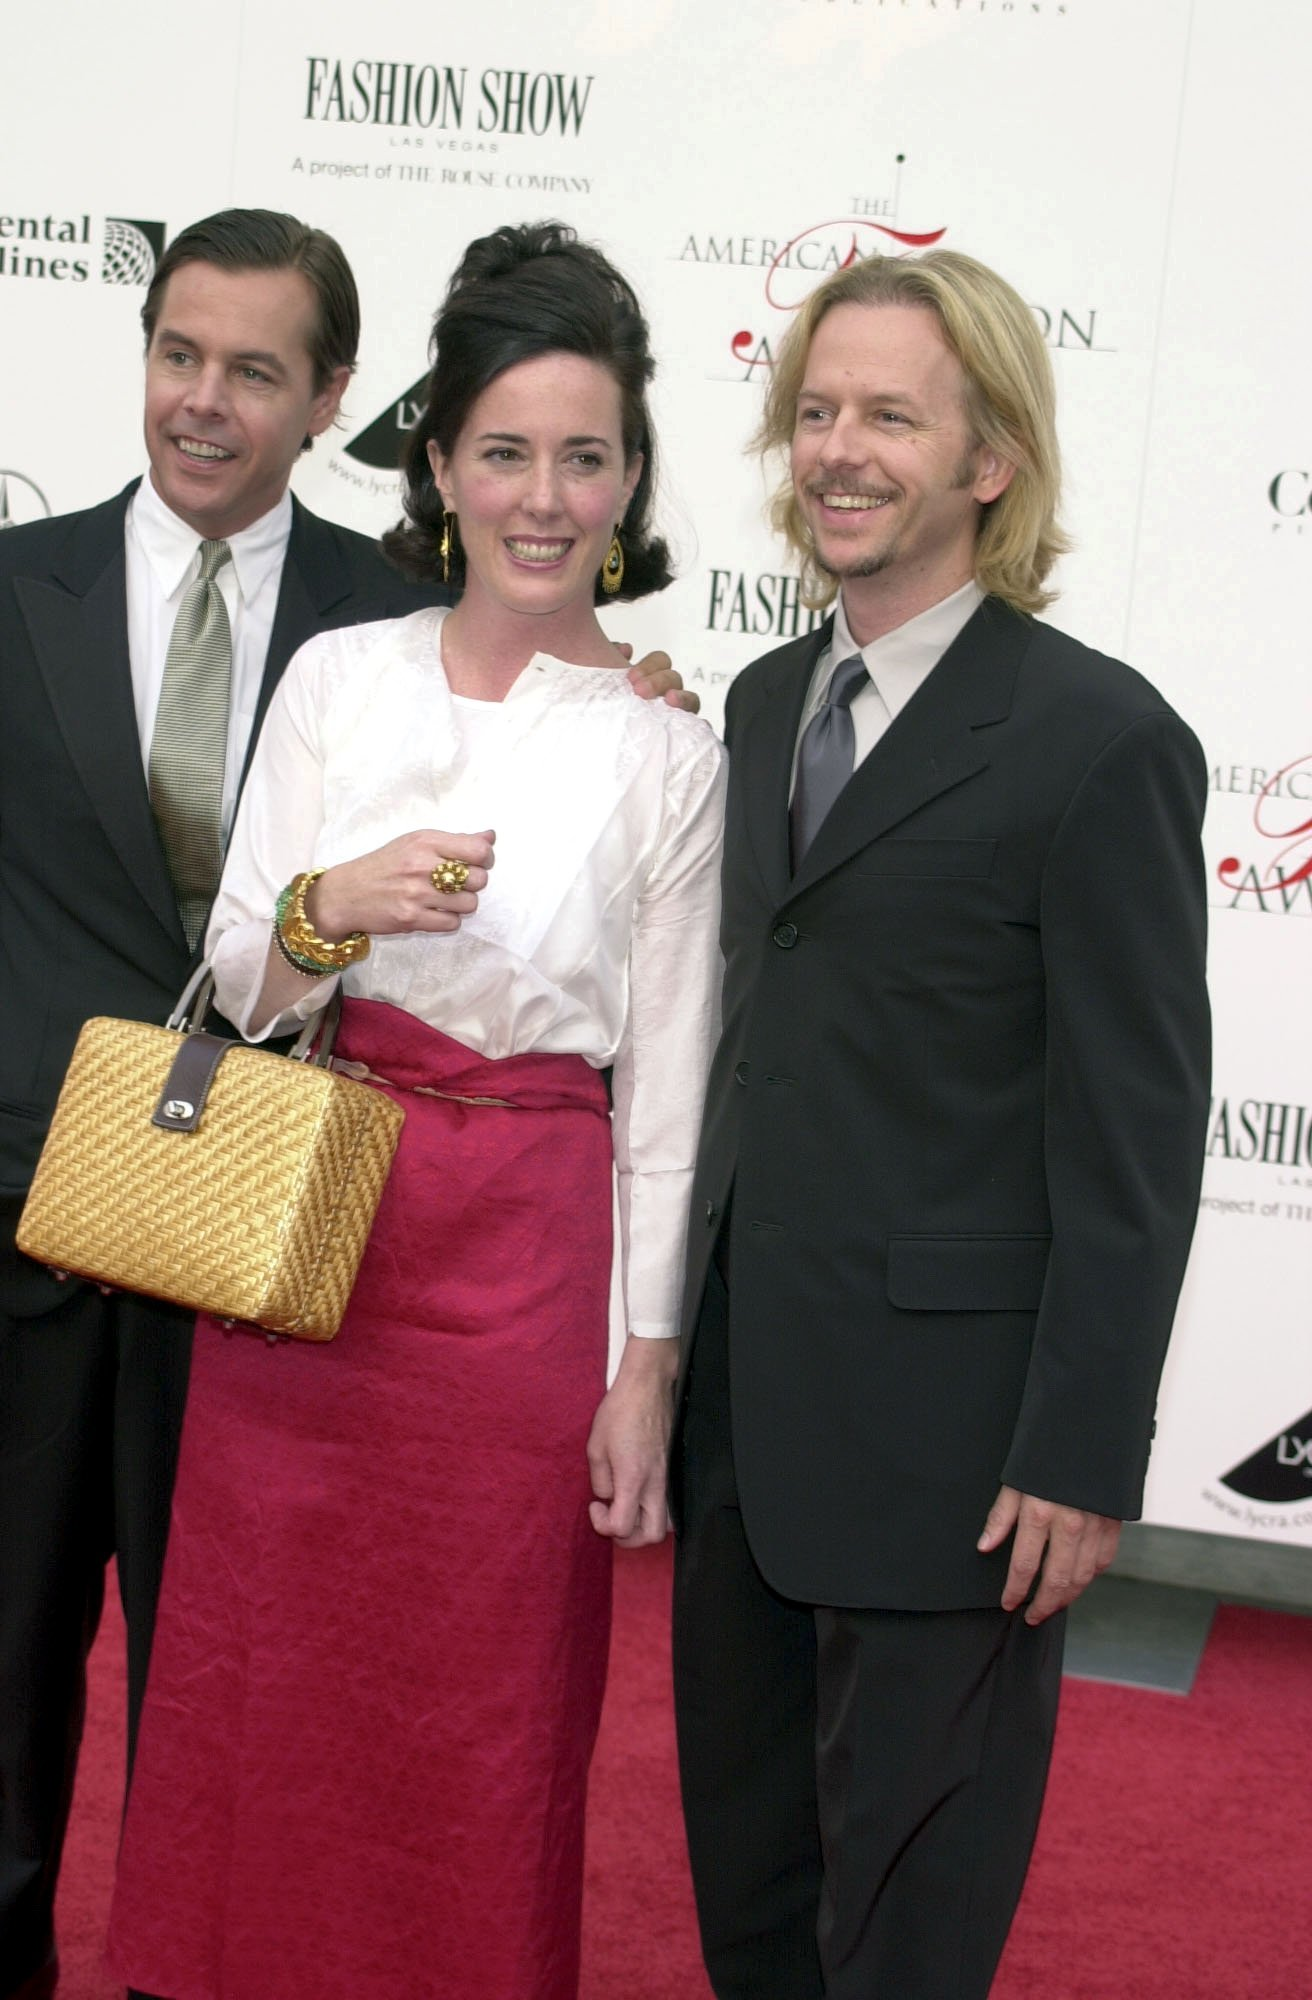 <div class='meta'><div class='origin-logo' data-origin='none'></div><span class='caption-text' data-credit='CHARLES SYKES/REX/Shutterstock'>Kate Spade with brother David Spade at the Council of fashion designers of America Fashion Awards in New York in 2001</span></div>